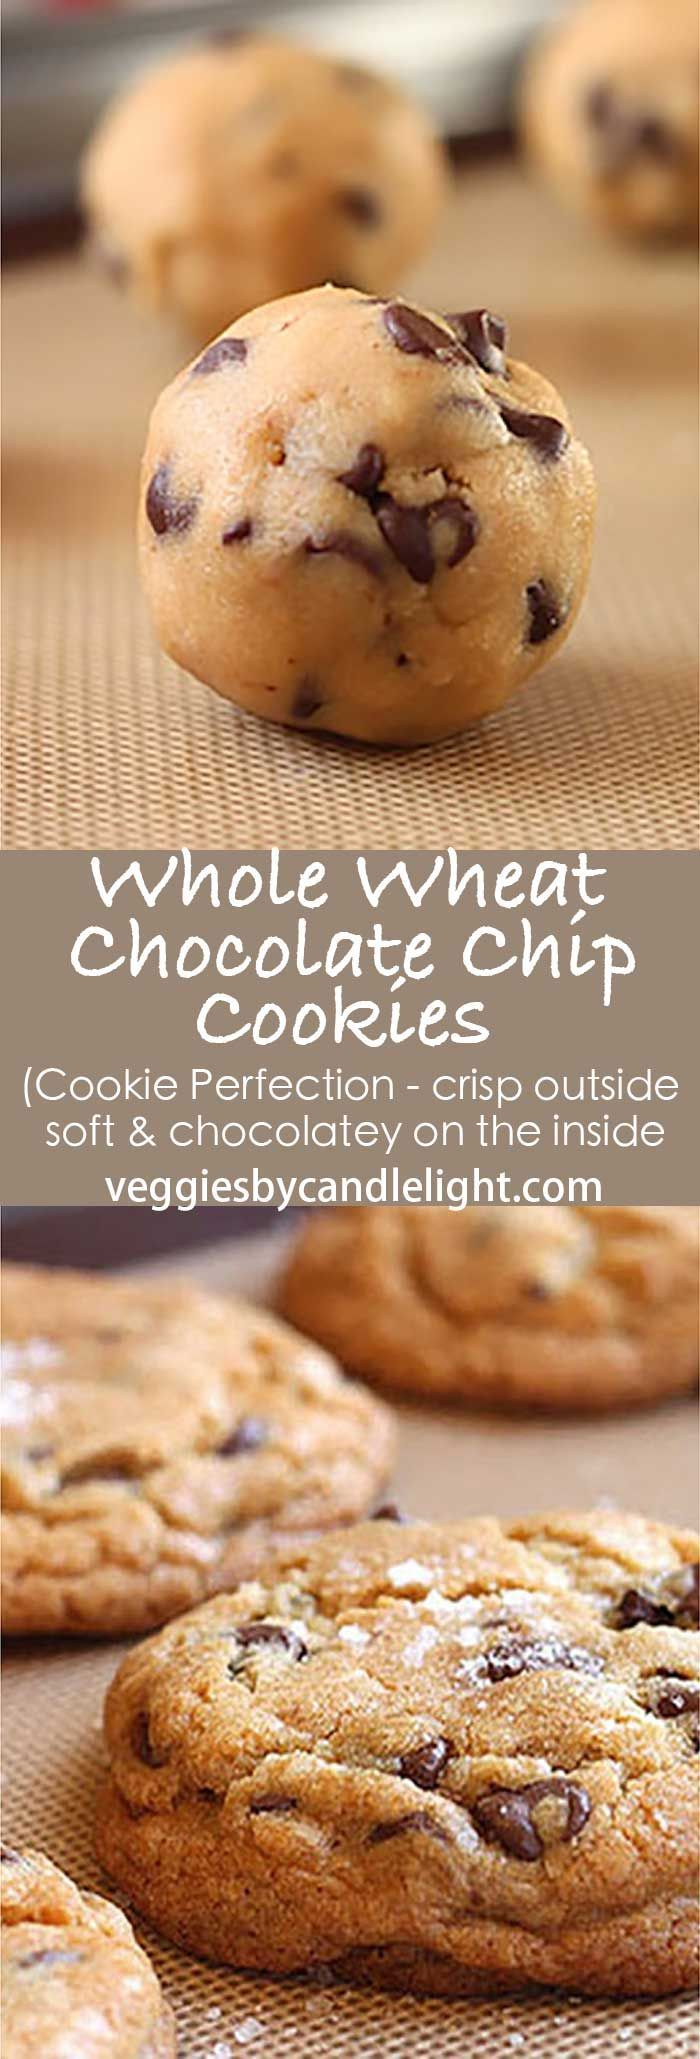 Whole Wheat Chocolate Chip Cookies - Hands down .. my favorite chocolate chip cookie. Baking up fat and tall, with a crisp, almost crust-like exterior .. on the inside, they're soft, with chocolate in every bite